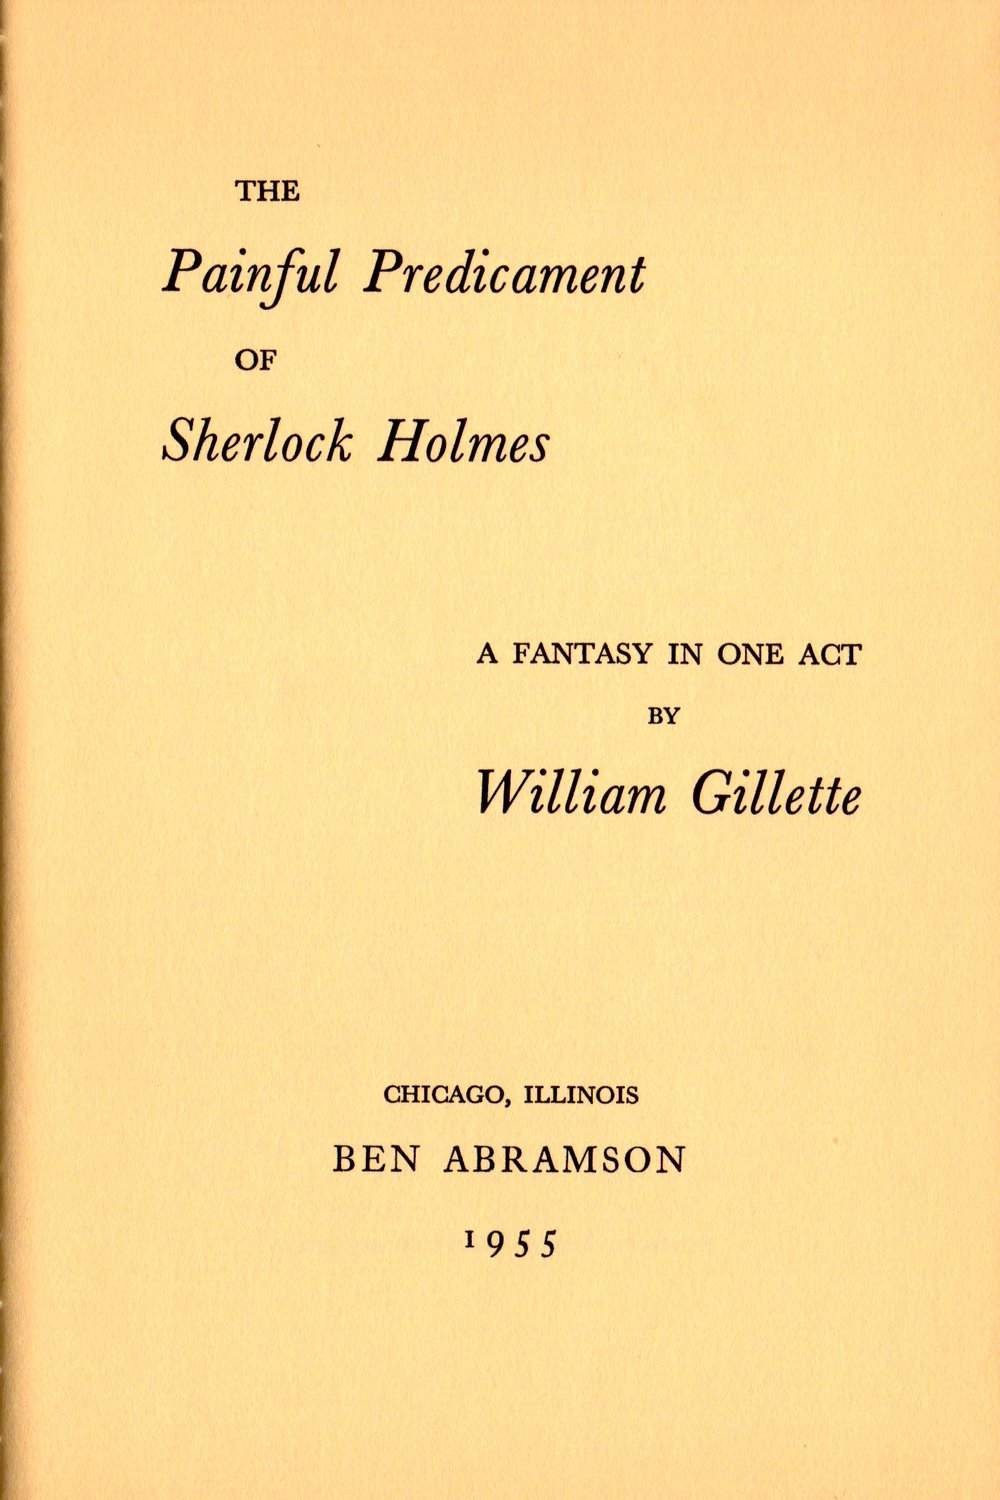 Title page to  The Painful Predicament of Sherlock Holmes.  Starrett contributed a forward.